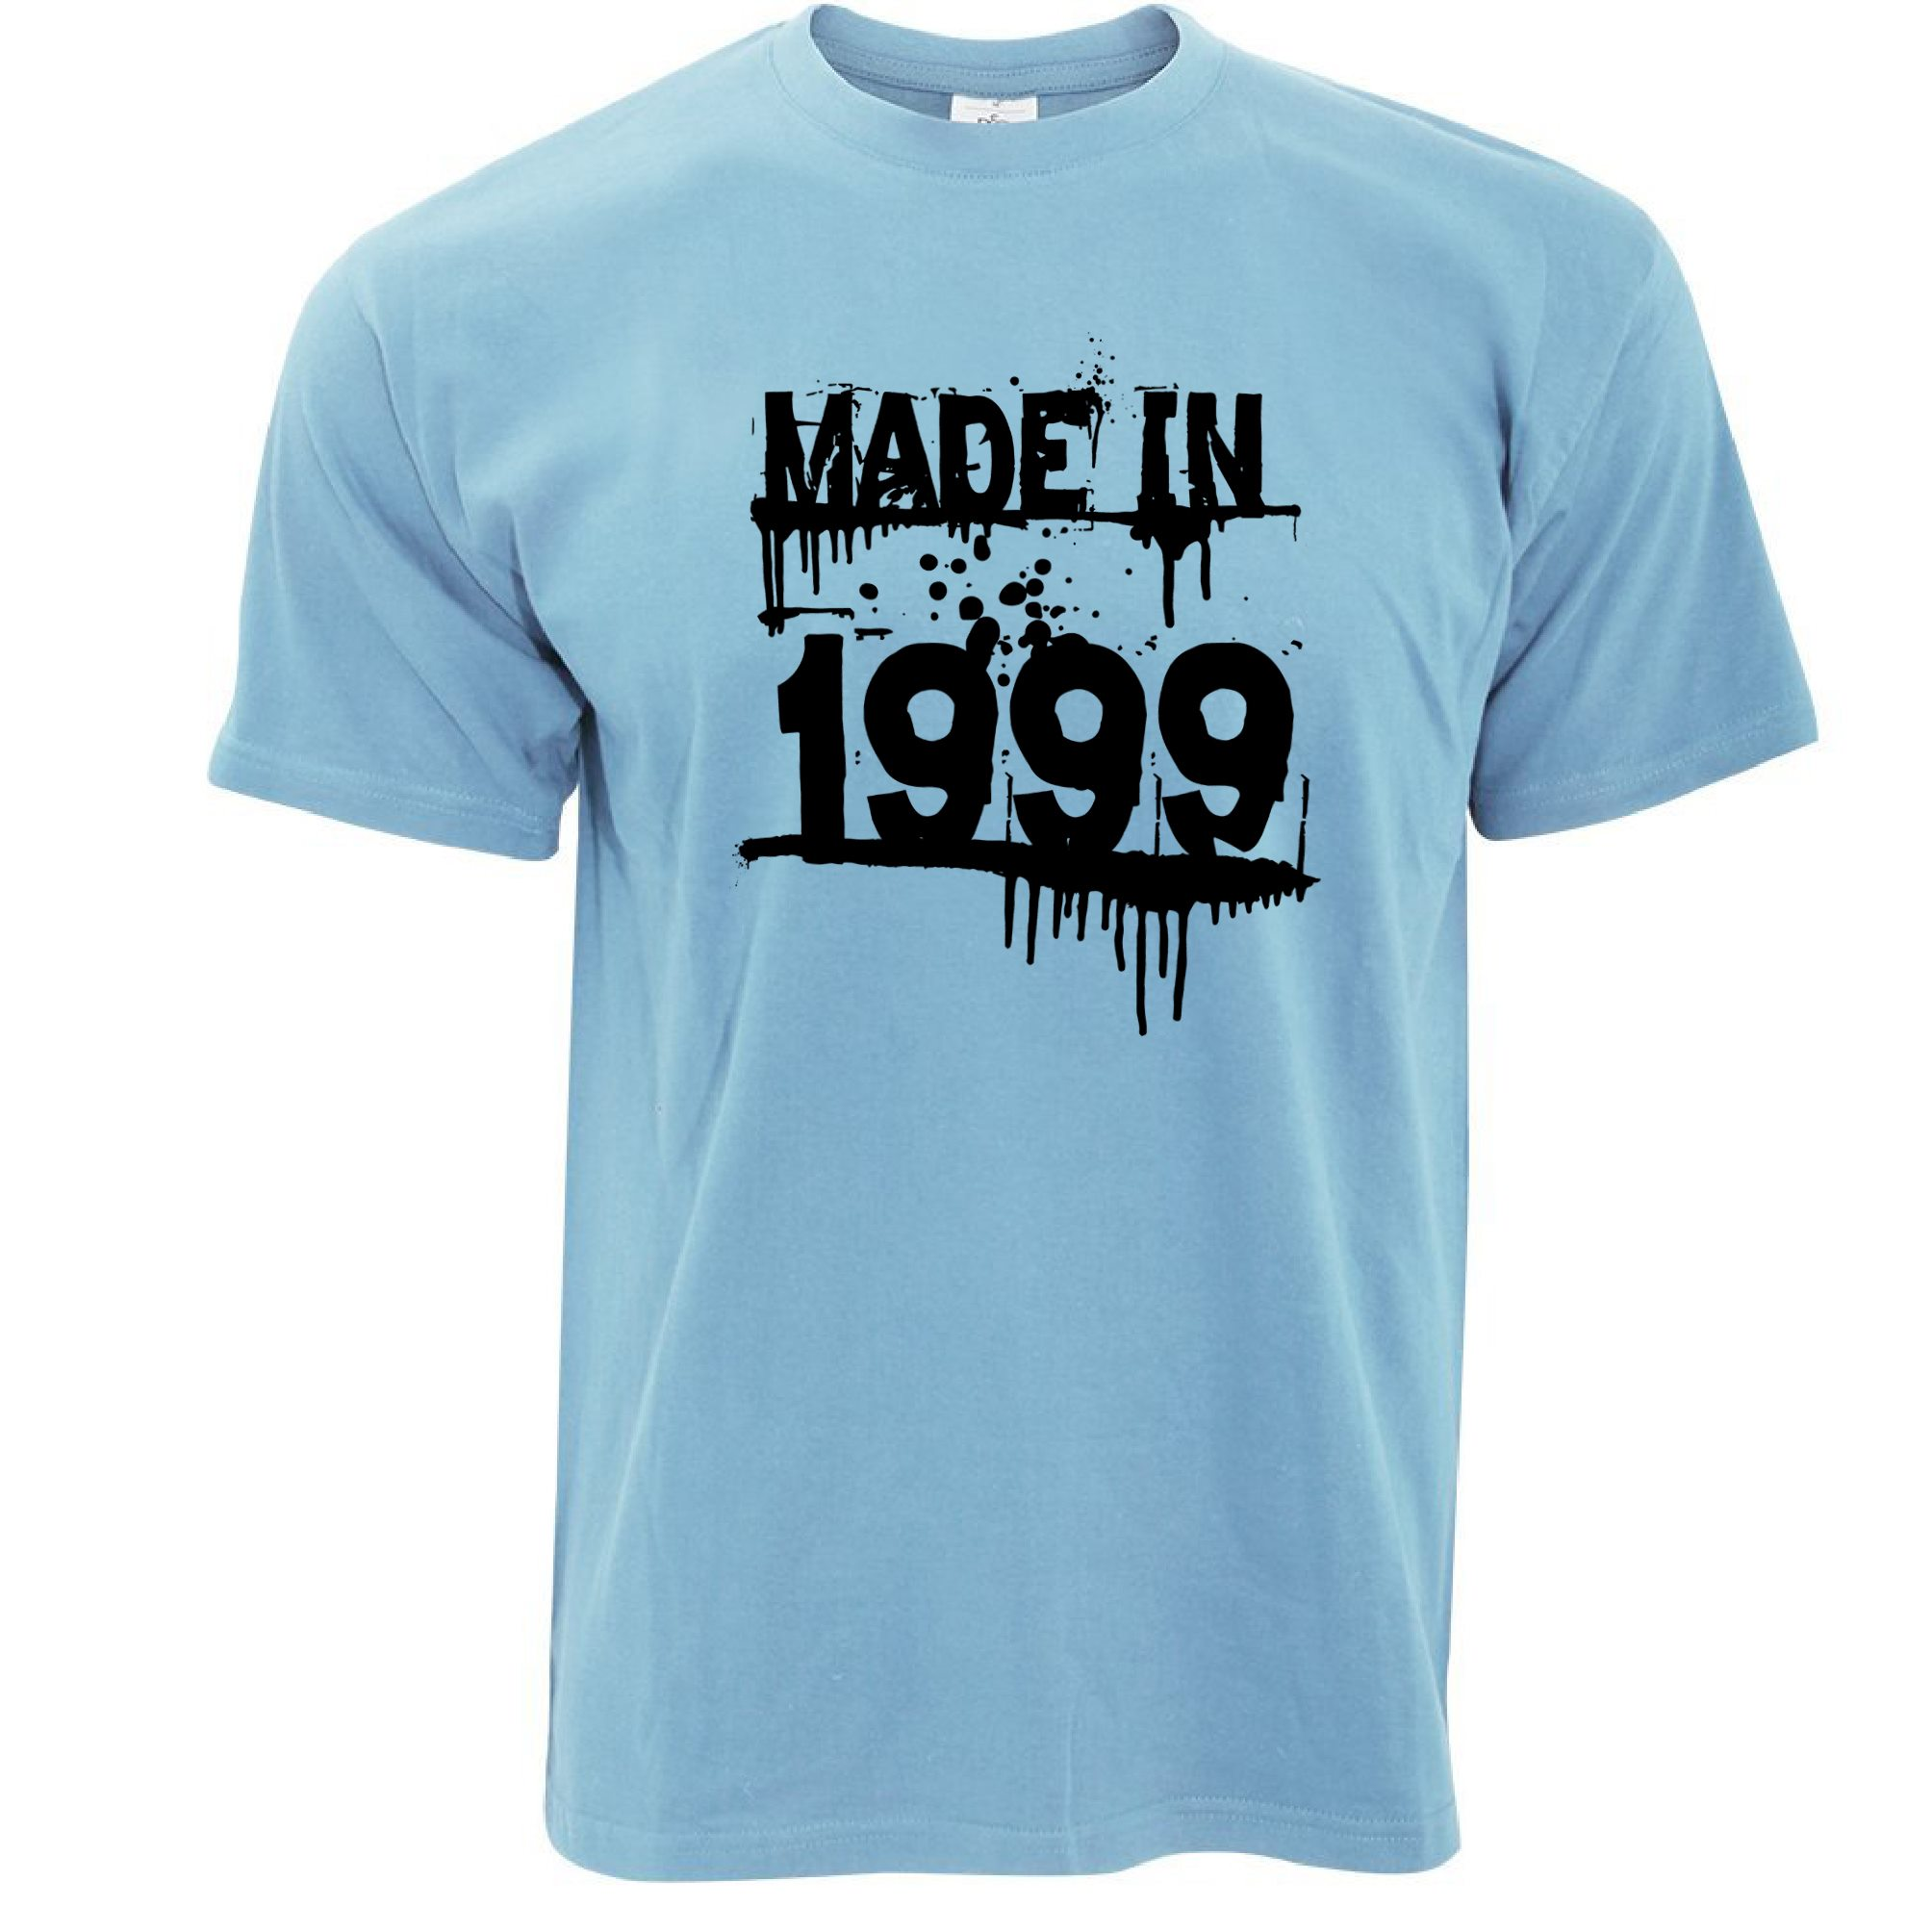 Shirt design mens